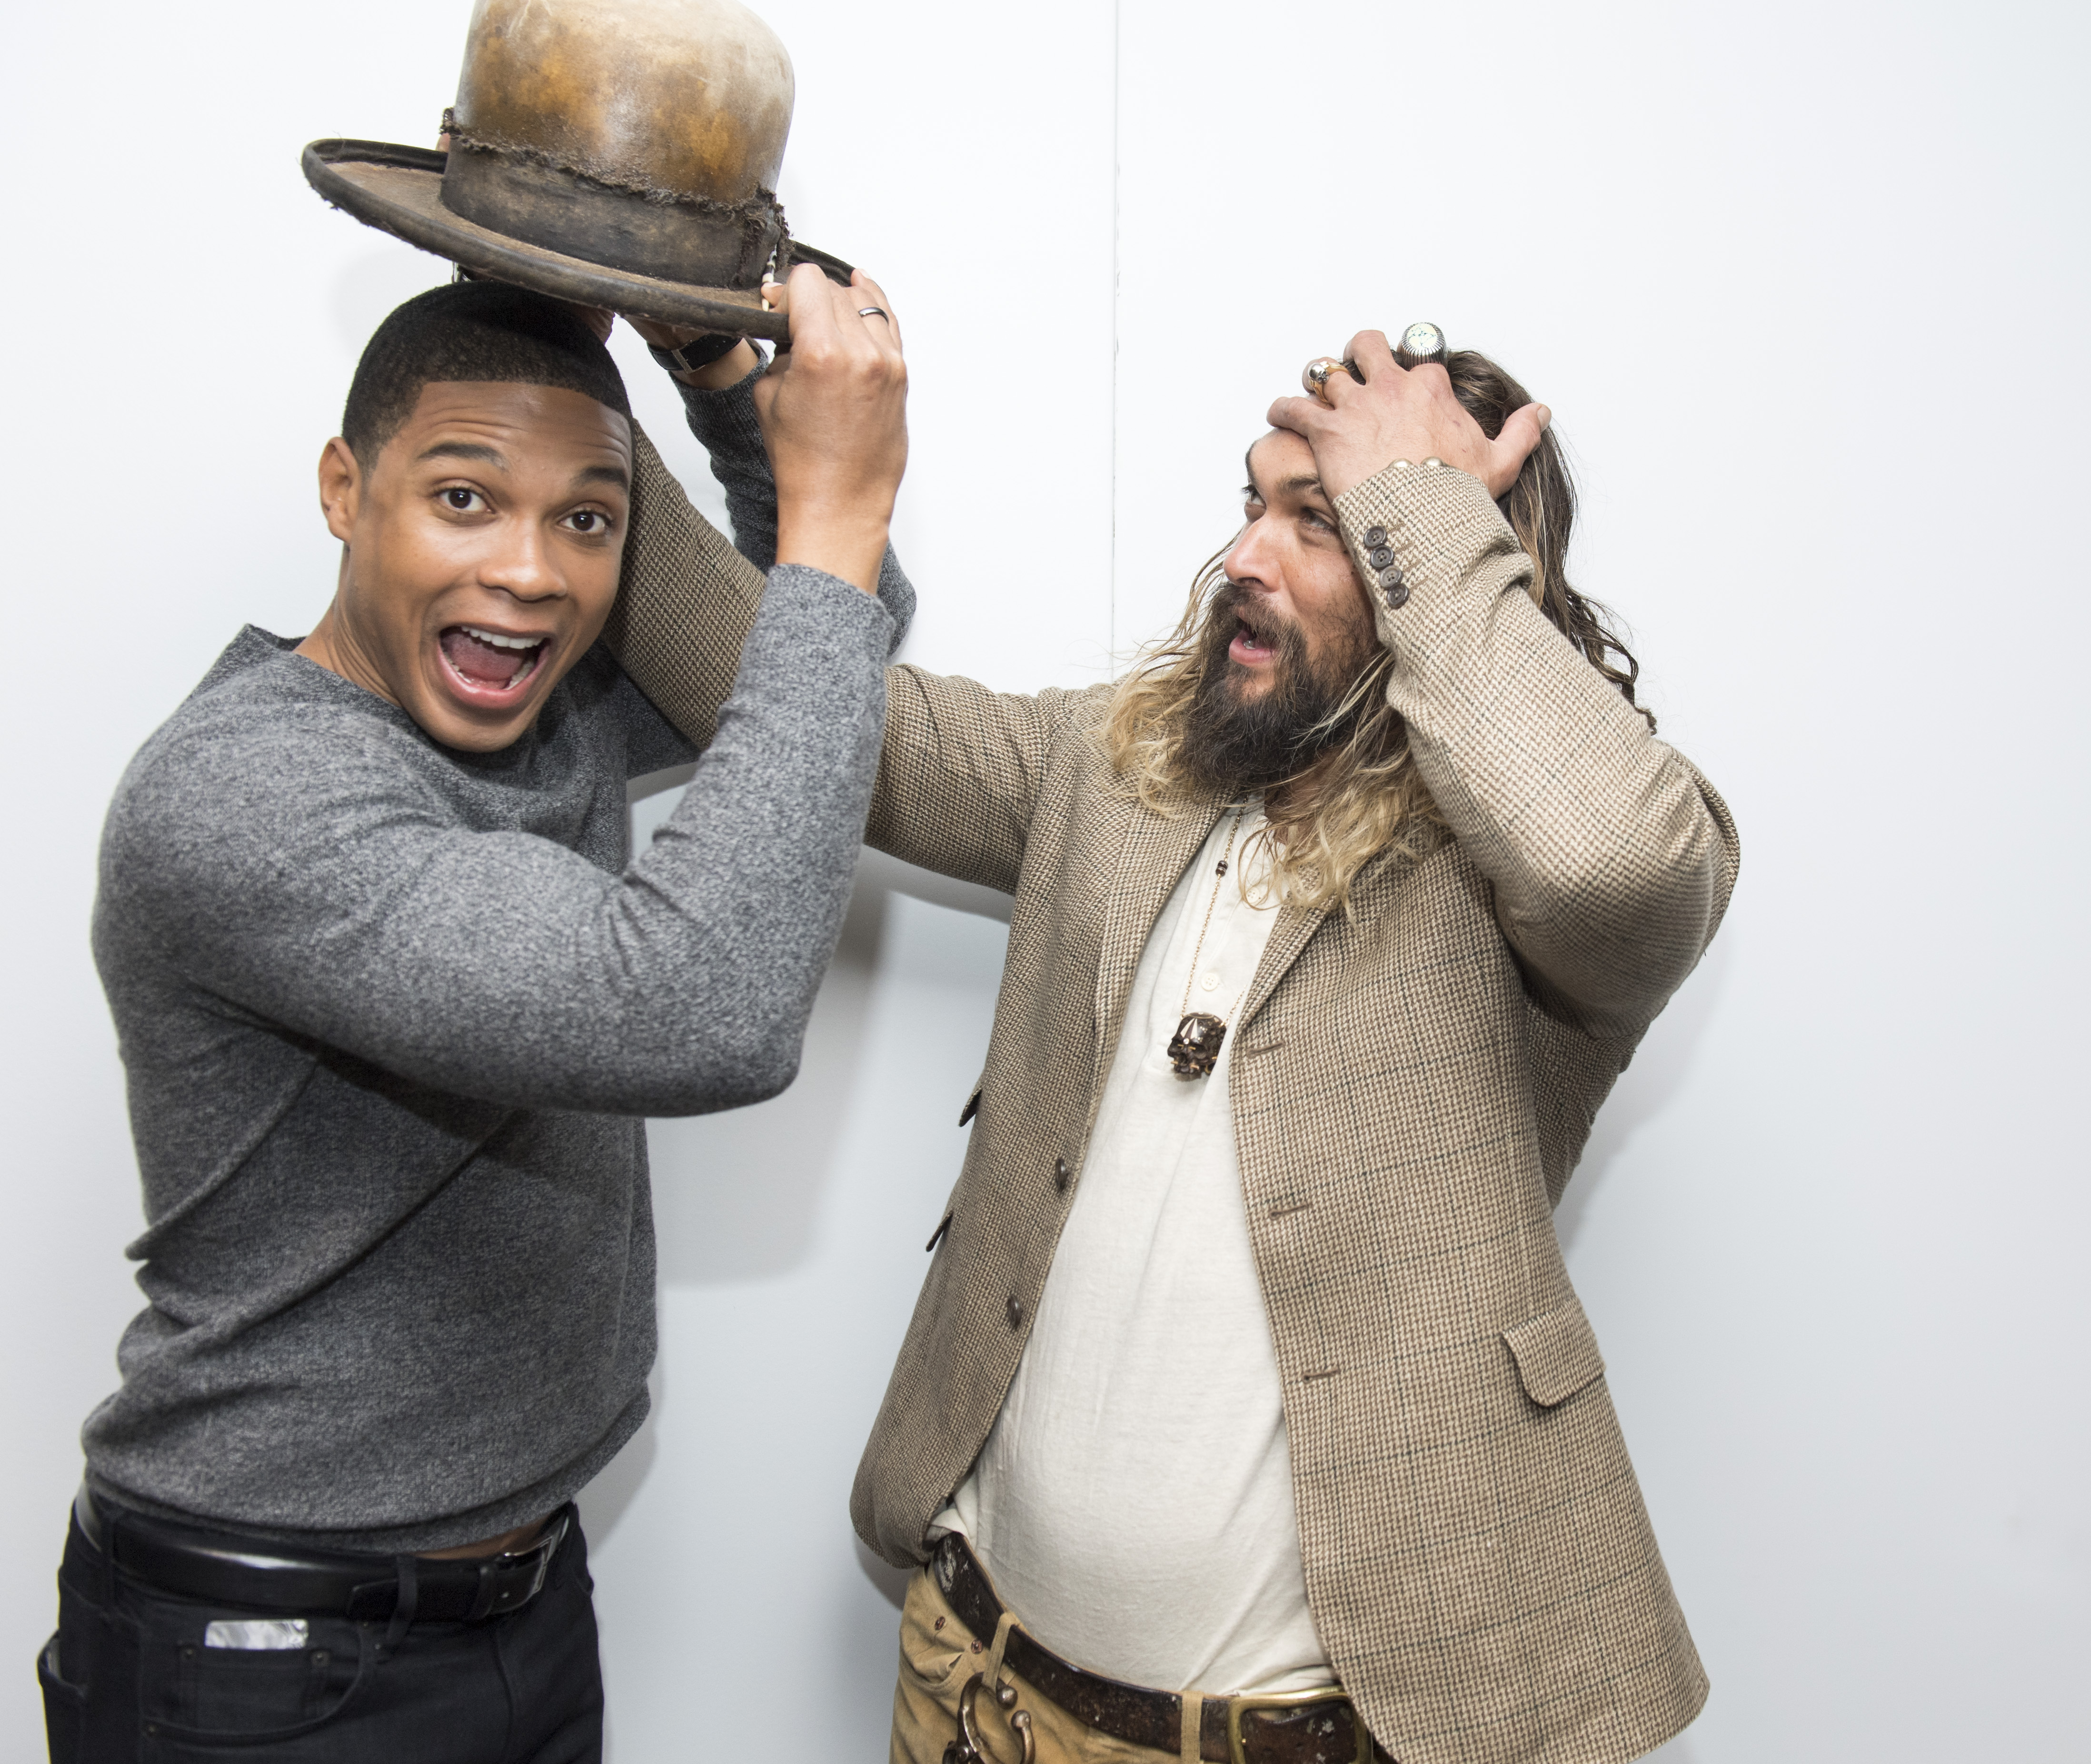 Jason Momoa Confirms Ray Fisher's Claims of Mistreatment on 'Justice League' Set